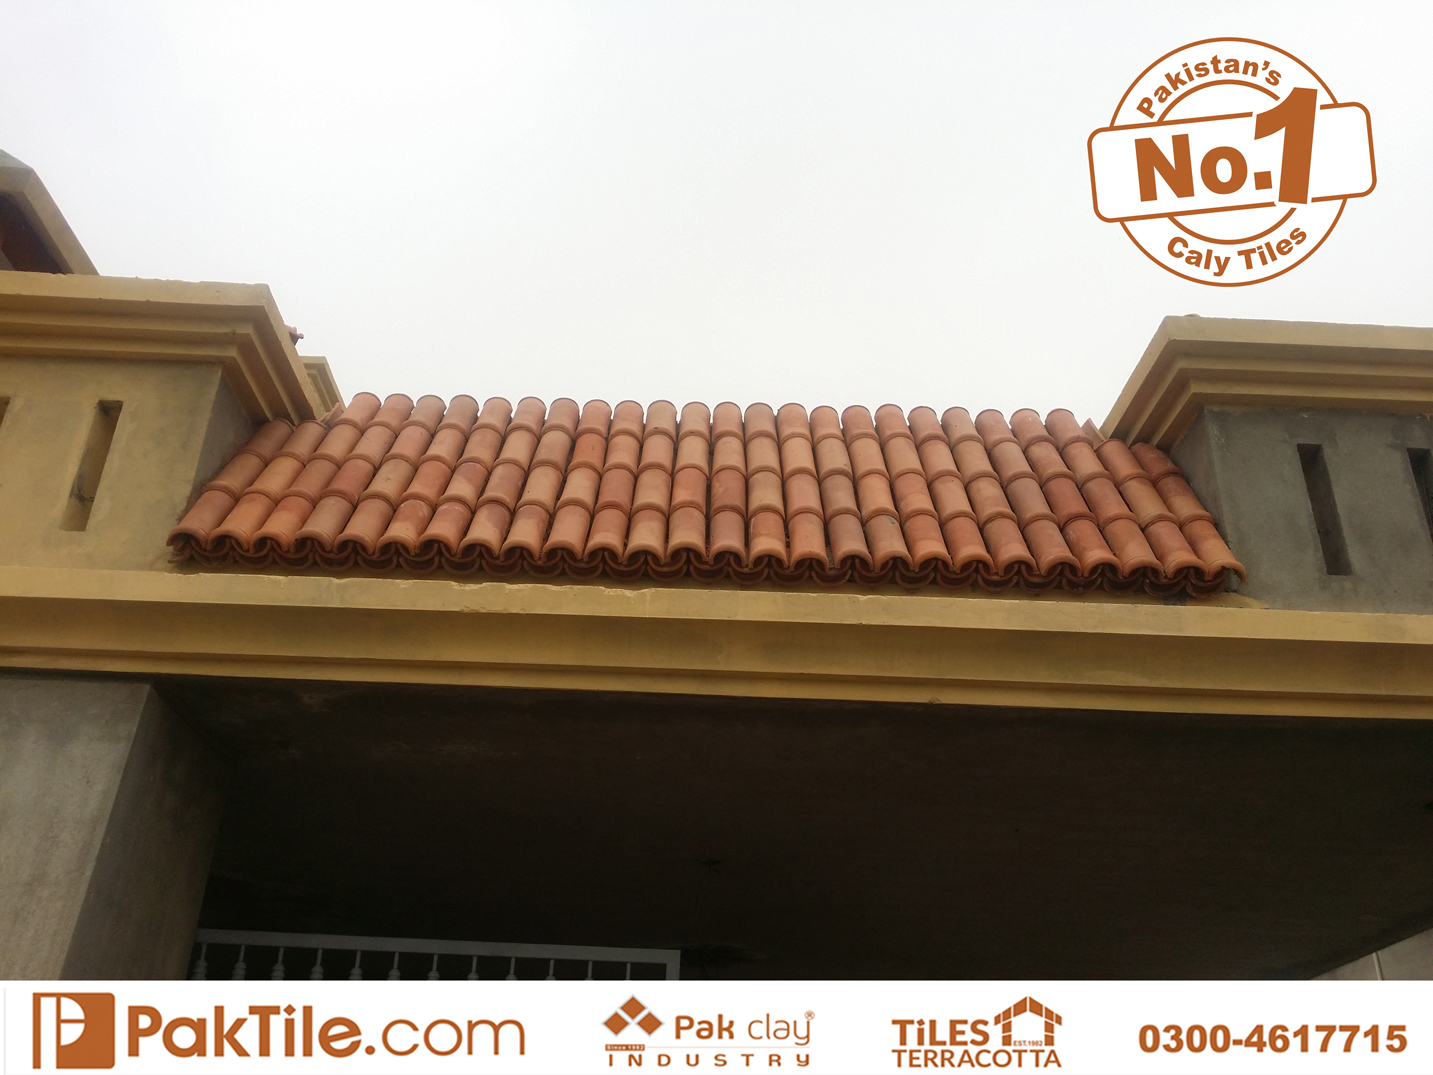 Flat Tiles 12 X4 Pak Clay Floor Tiles Pakistan Buy Clay Roof Tiles